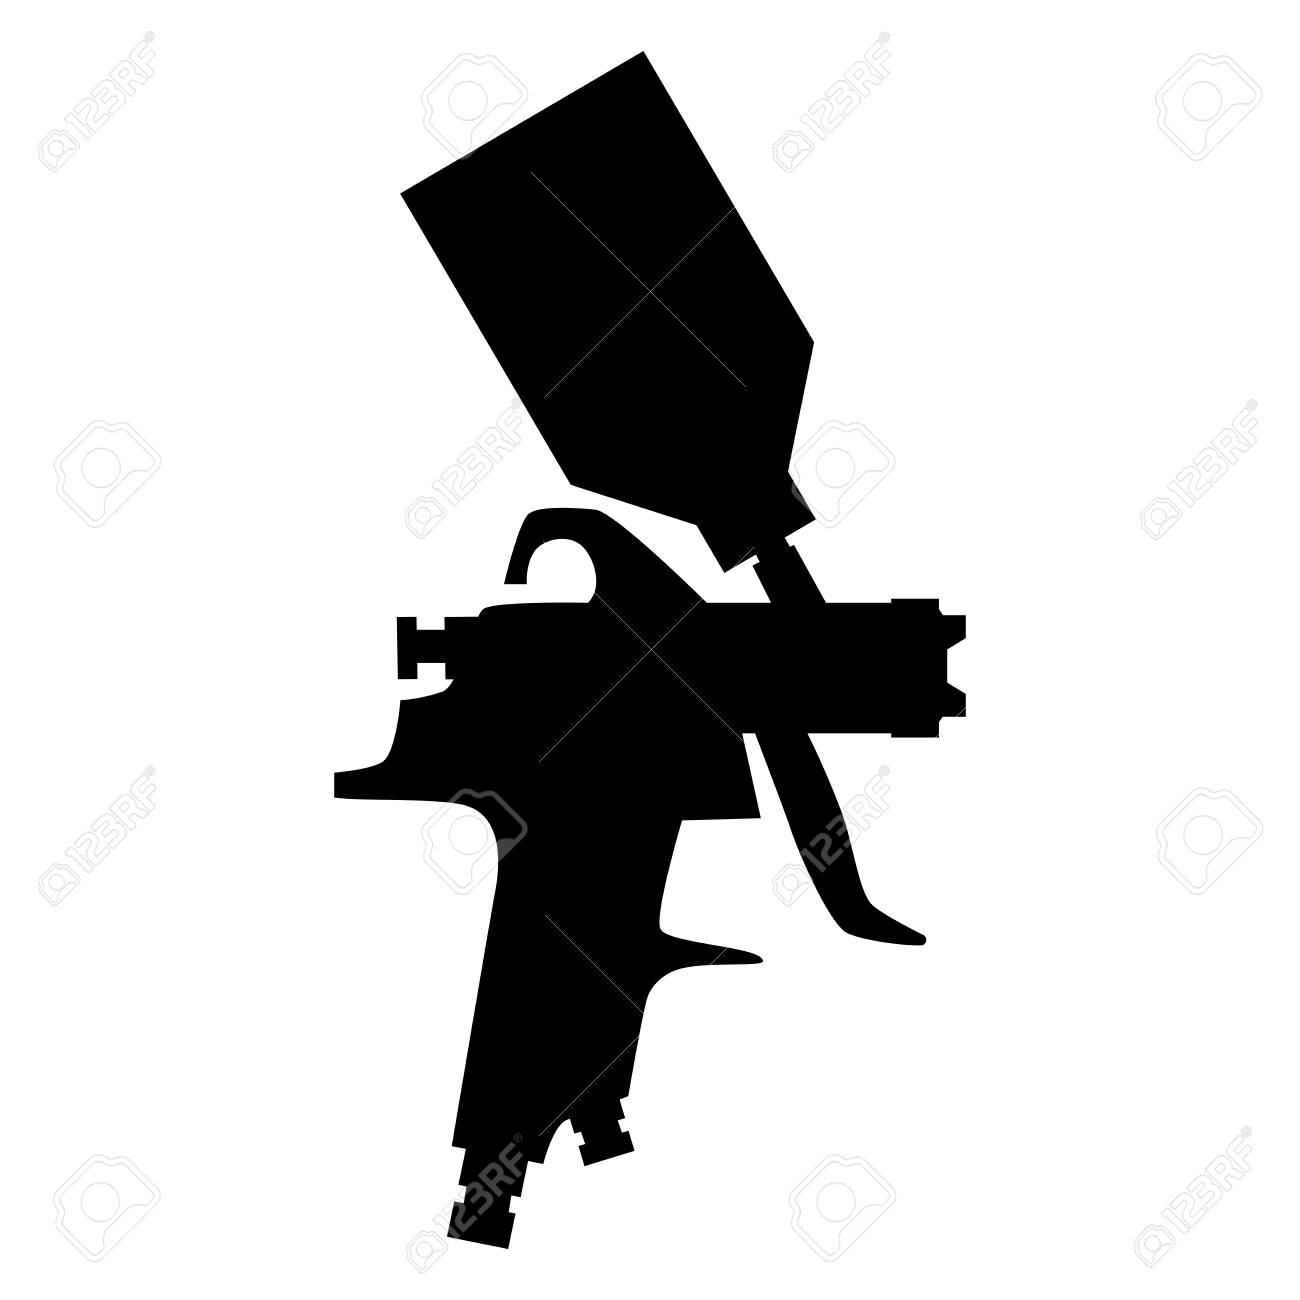 Paint Spray Gun Silhouette Vector Isolated On White Background